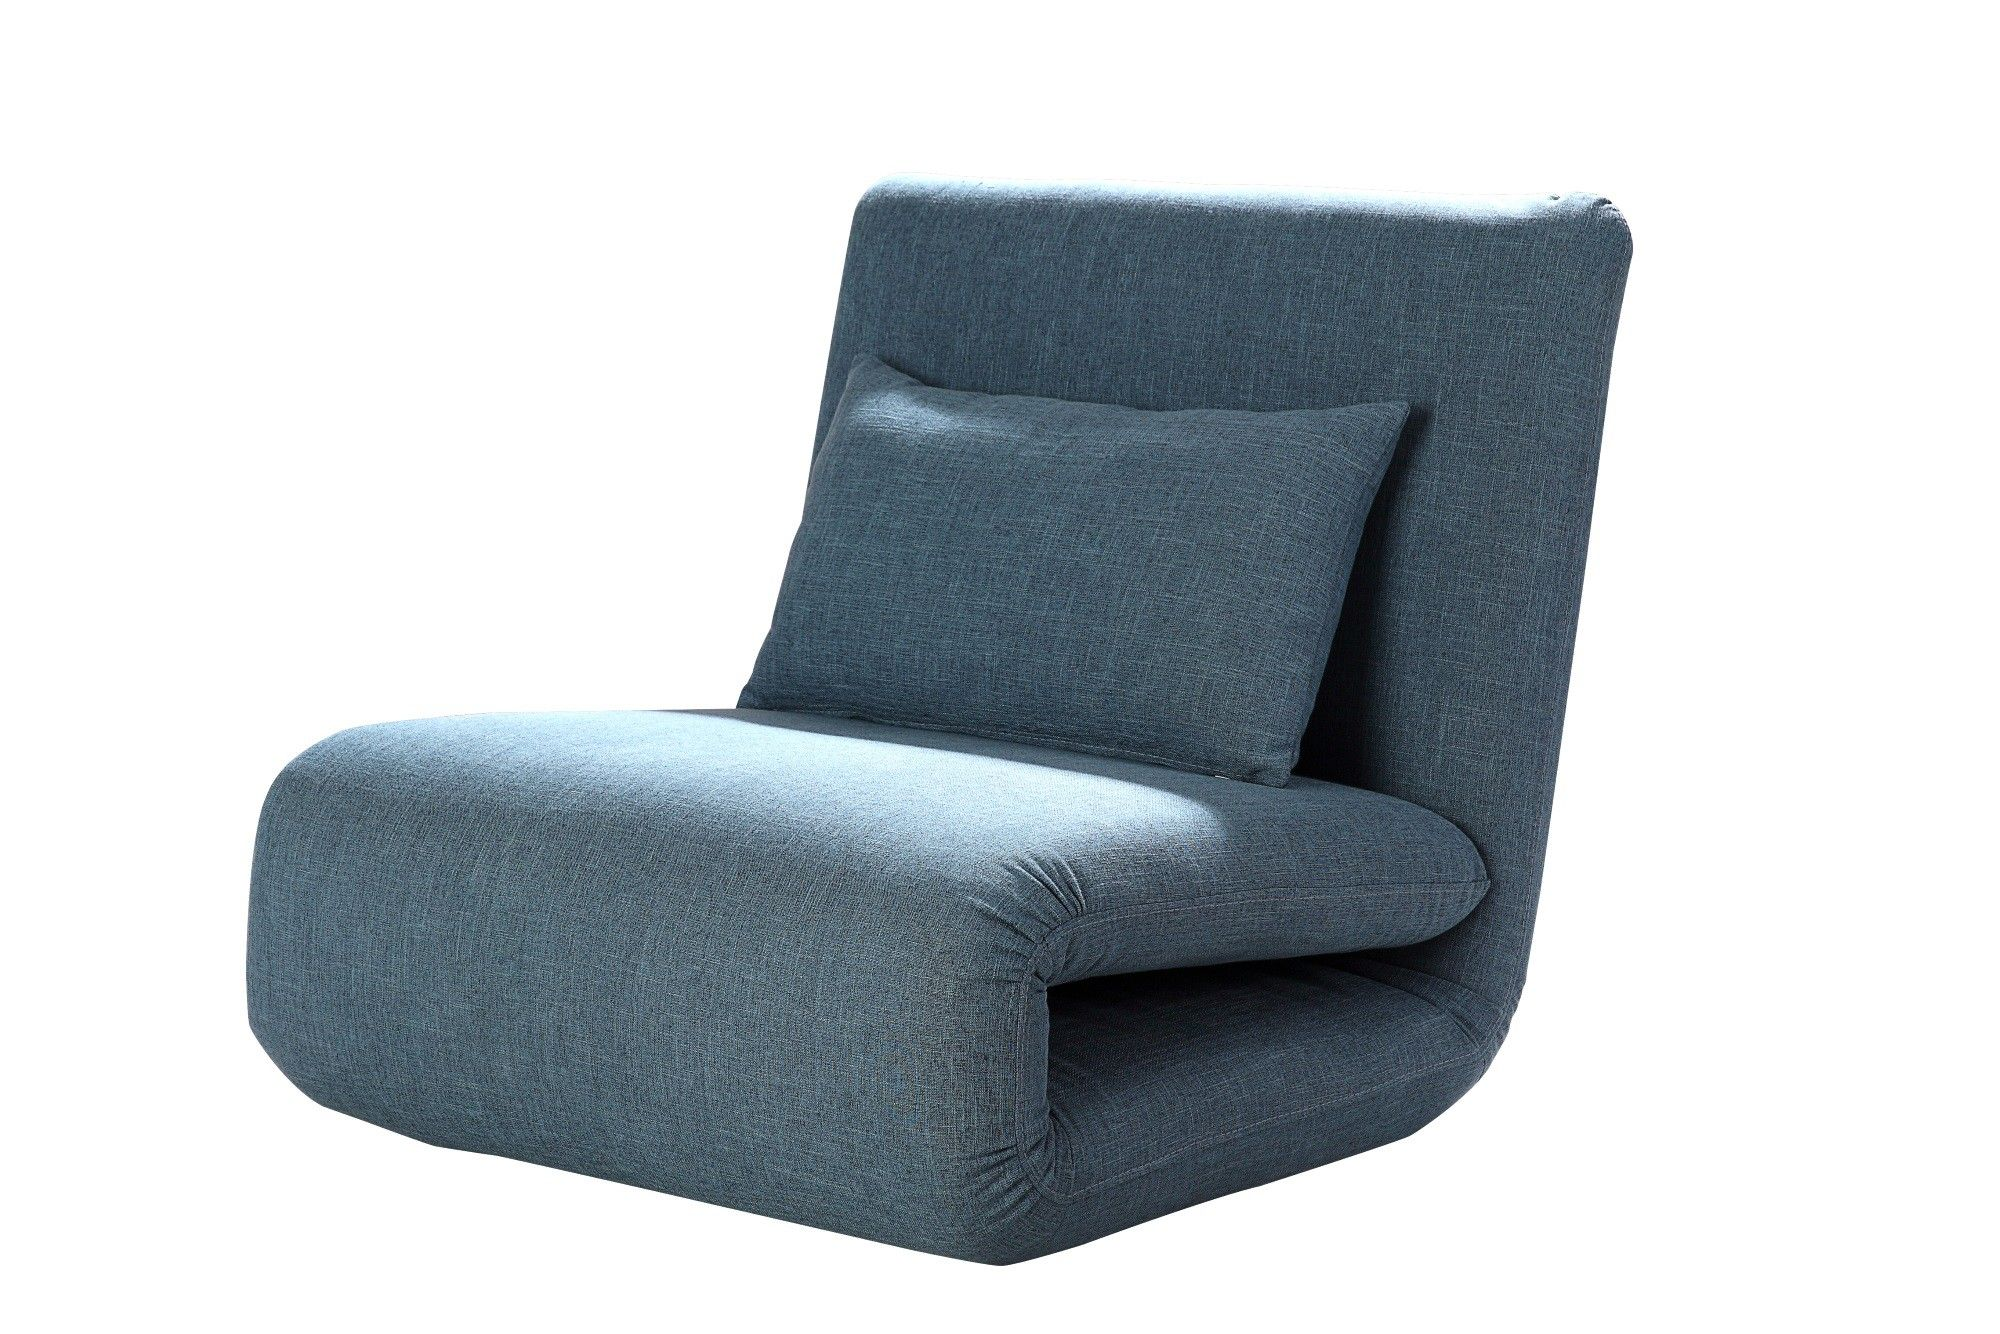 Ideal to welcome a friend | Space Saving en 2019 | Fauteuil ...